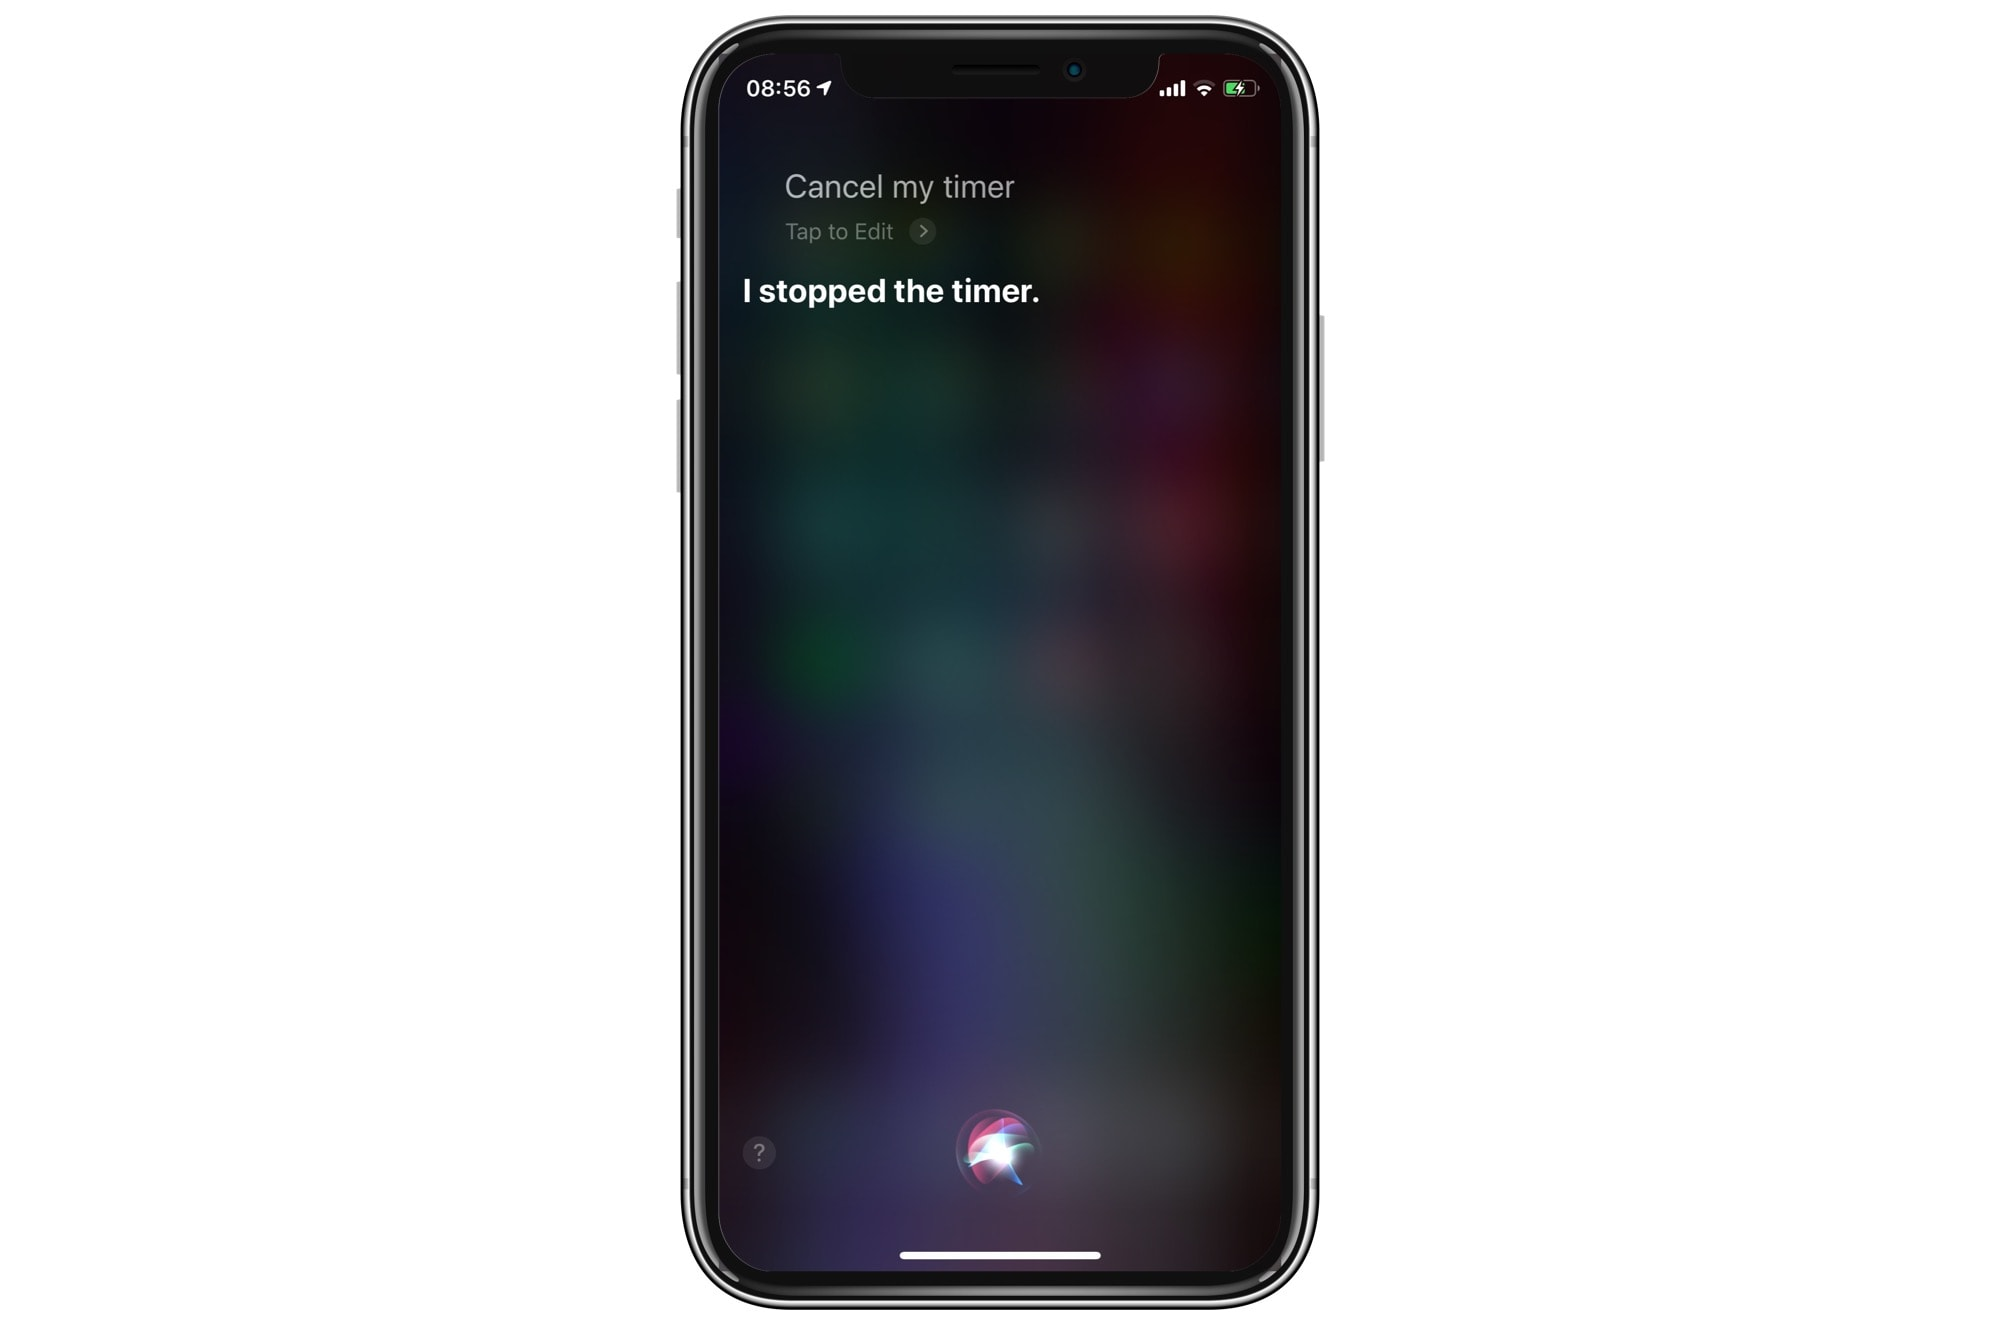 Siri can stop timers as well as starting them.